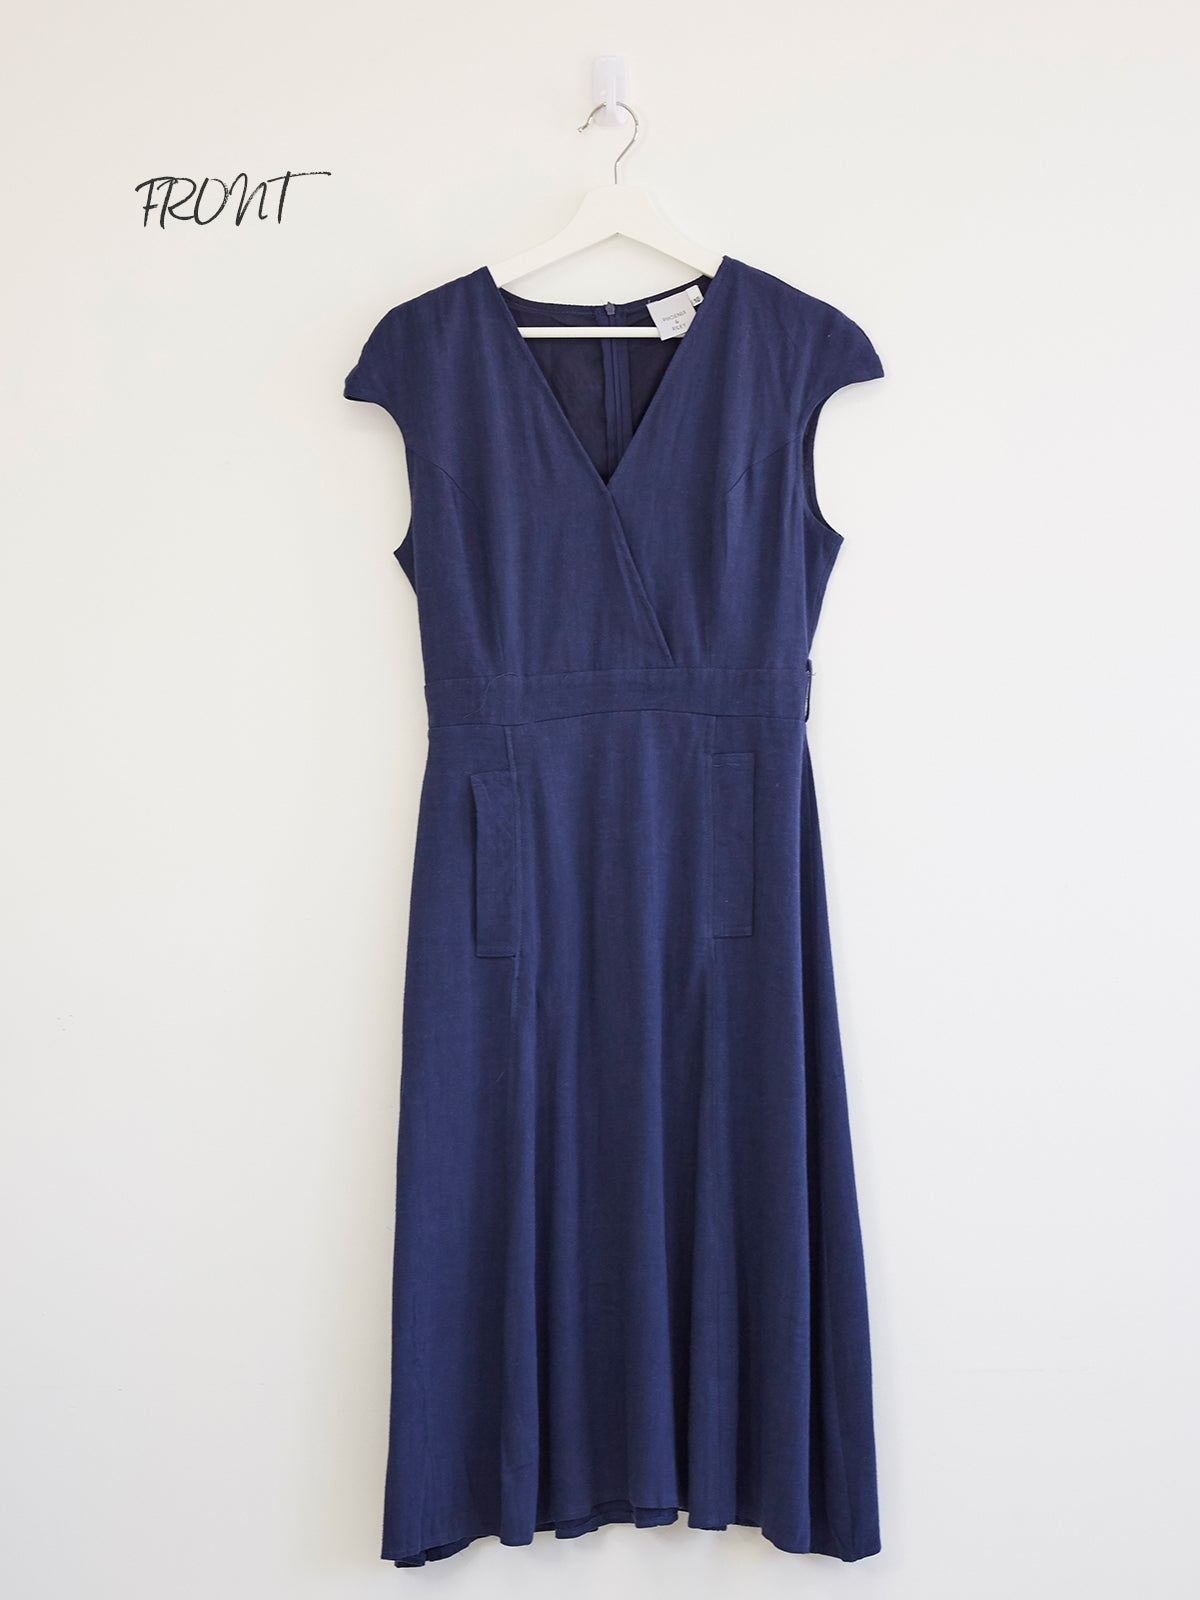 FROM MILAN WITH LOVE - NAVY